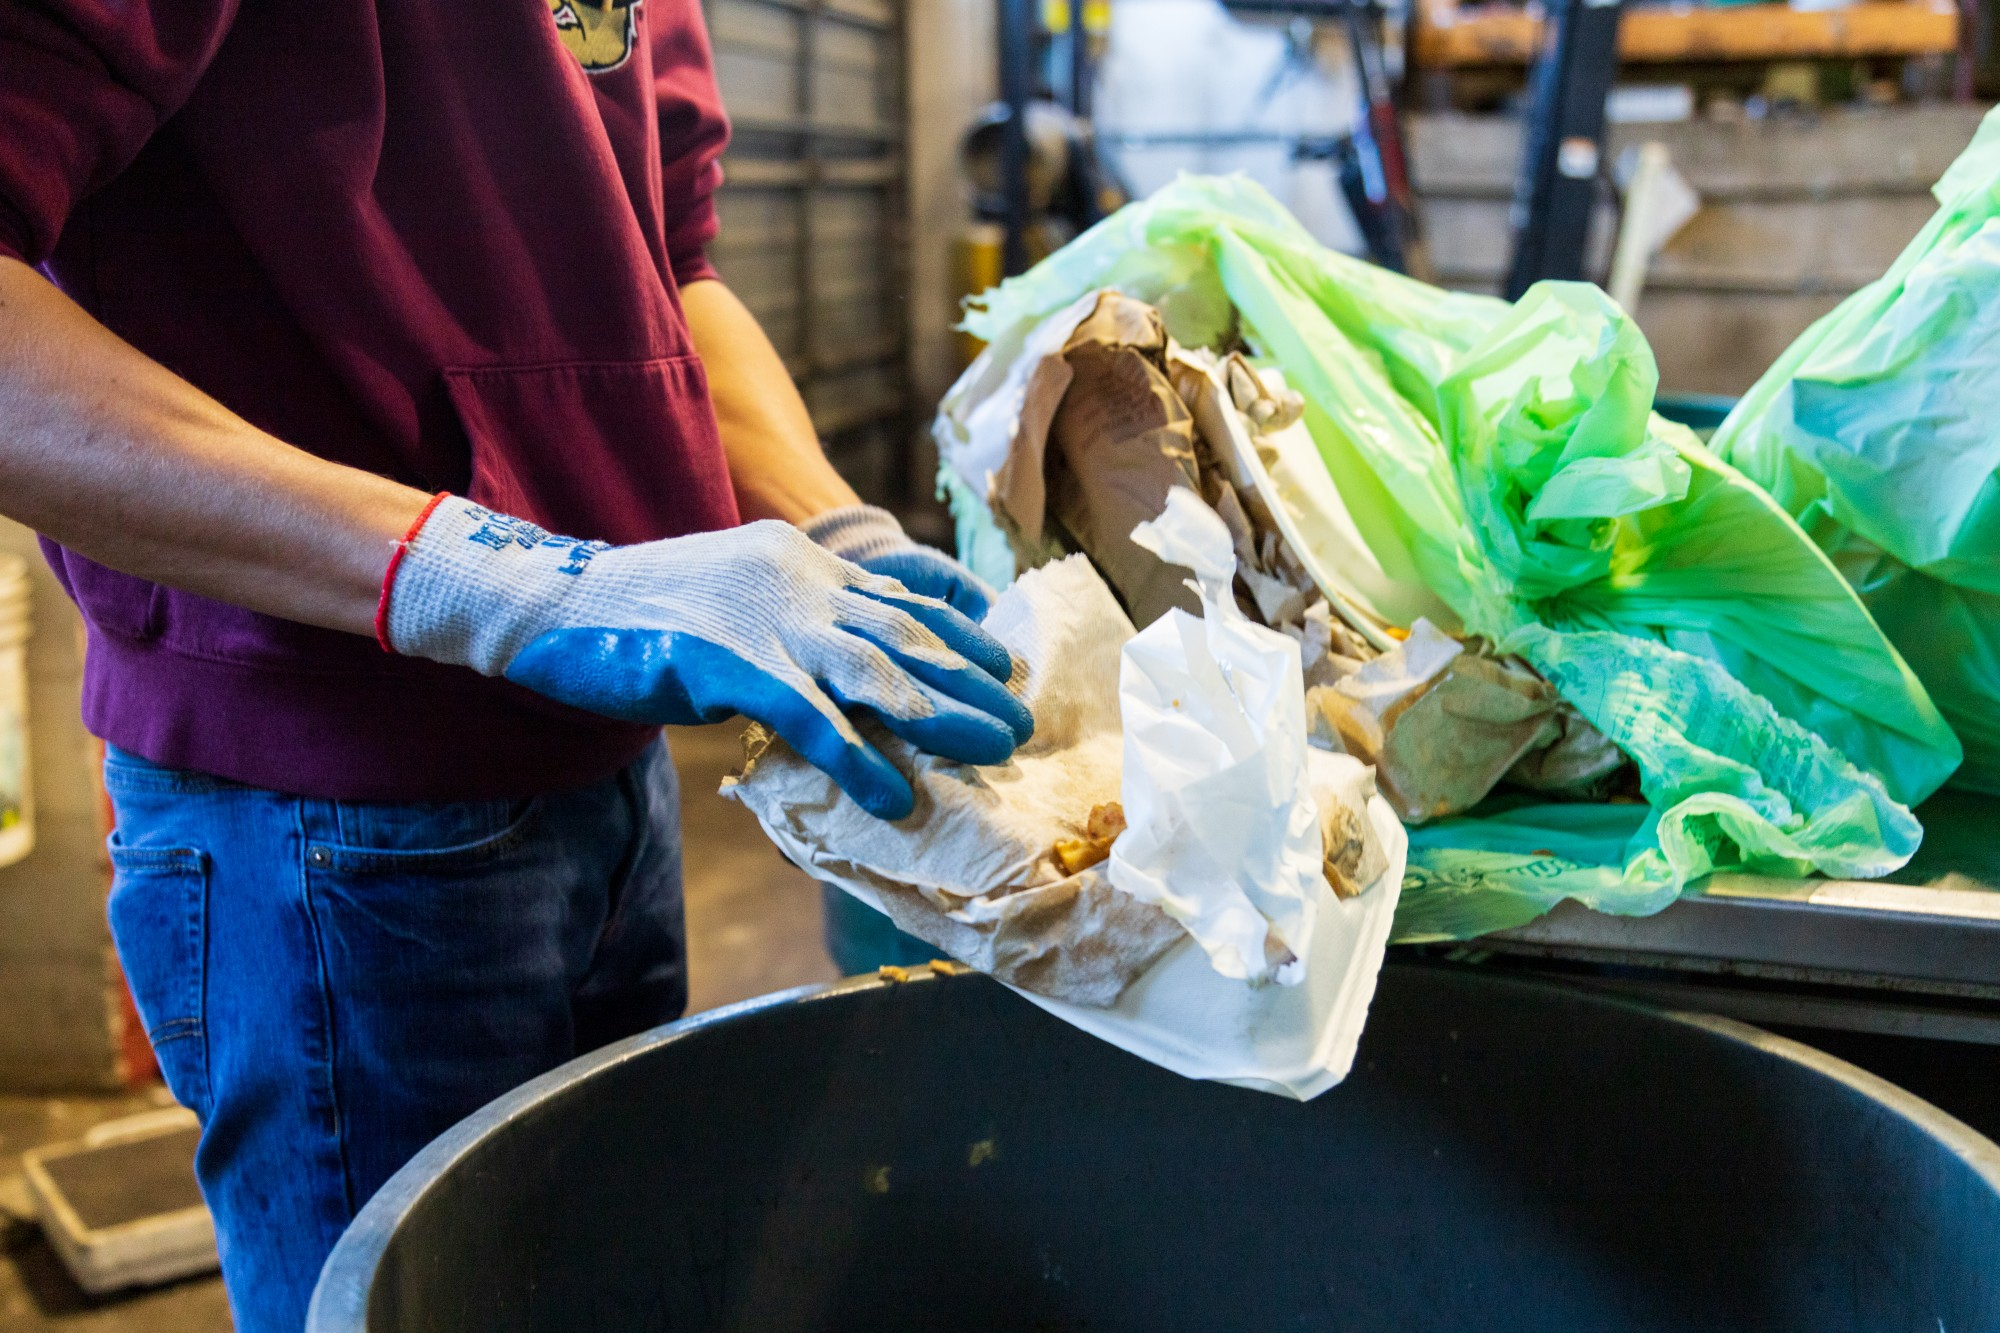 Student Worker Bailey Krolnika sorts through organics recycling from a University residence hall at Como recycling center on Wednesday, Feb. 19.